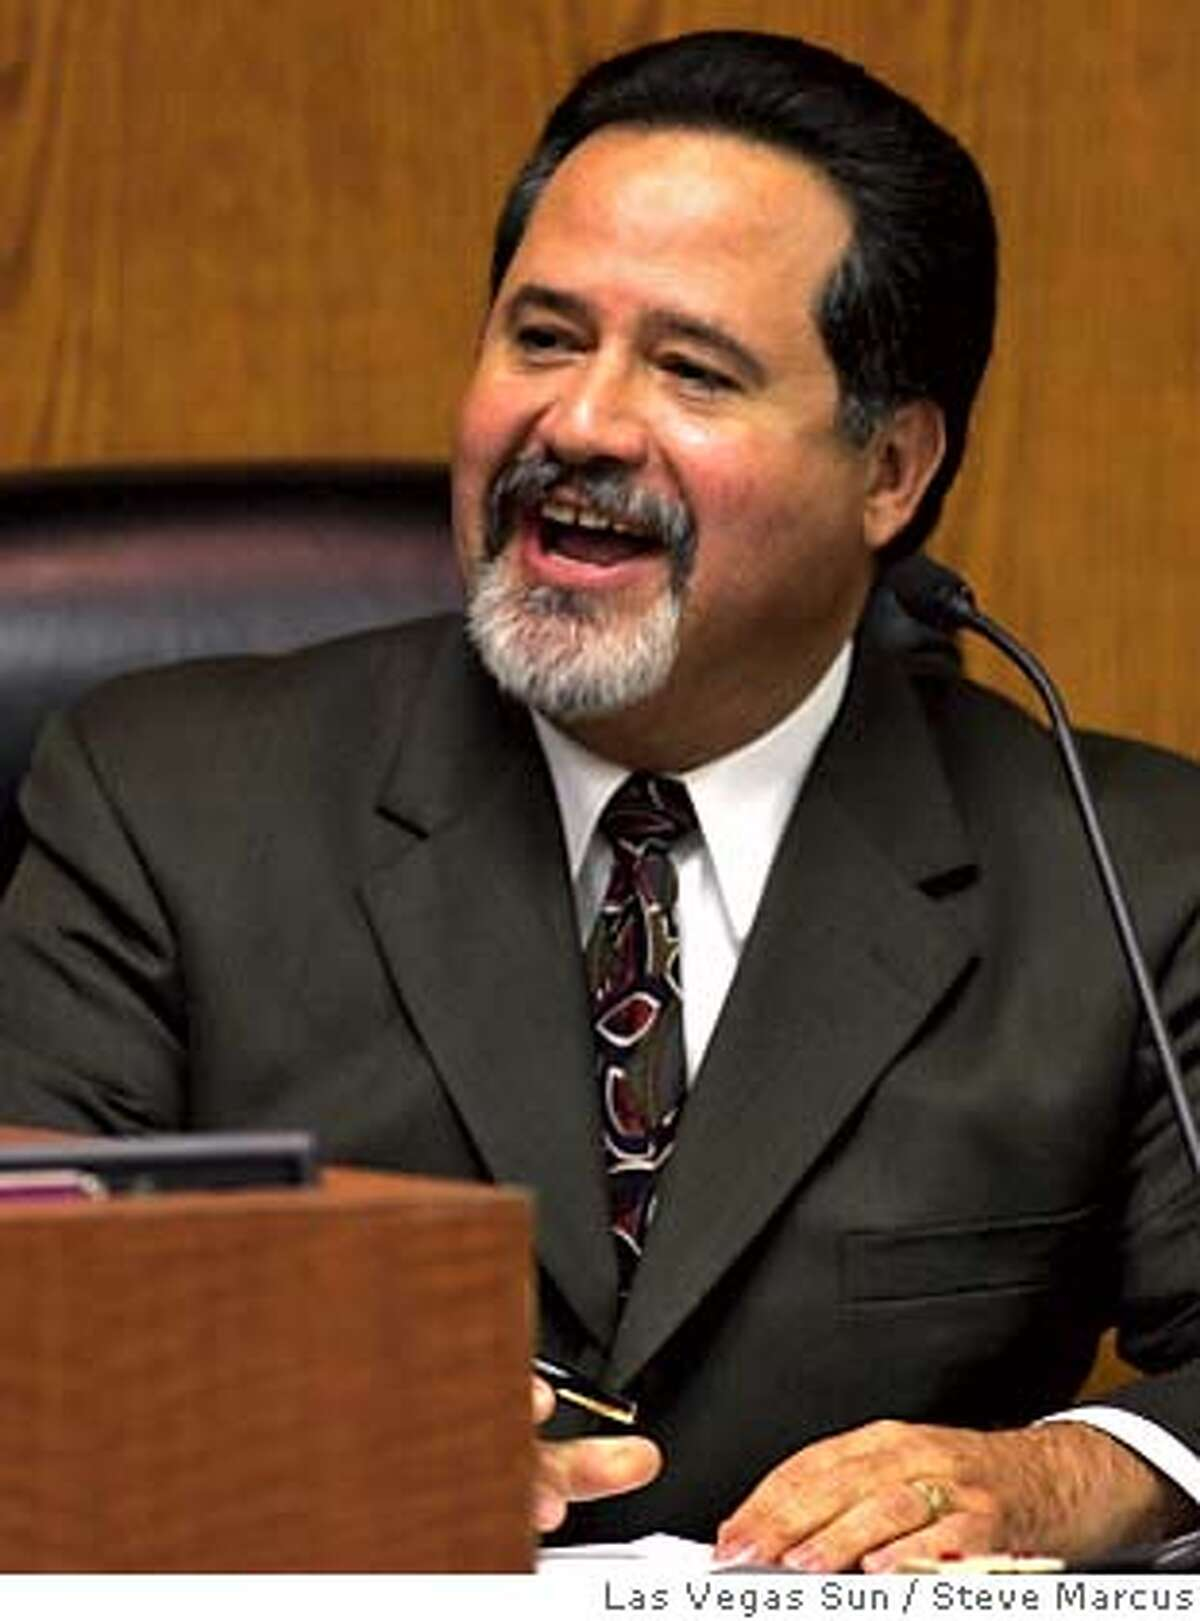 Clark County School Superintendant Carlos Garcia speaks during a school board meeting Wednesday, January 5, 2005. After a brief open meeting, board members went into a closed session to discuss Garcia's evaluation. STEVE MARCUS / LAS VEGAS SUN